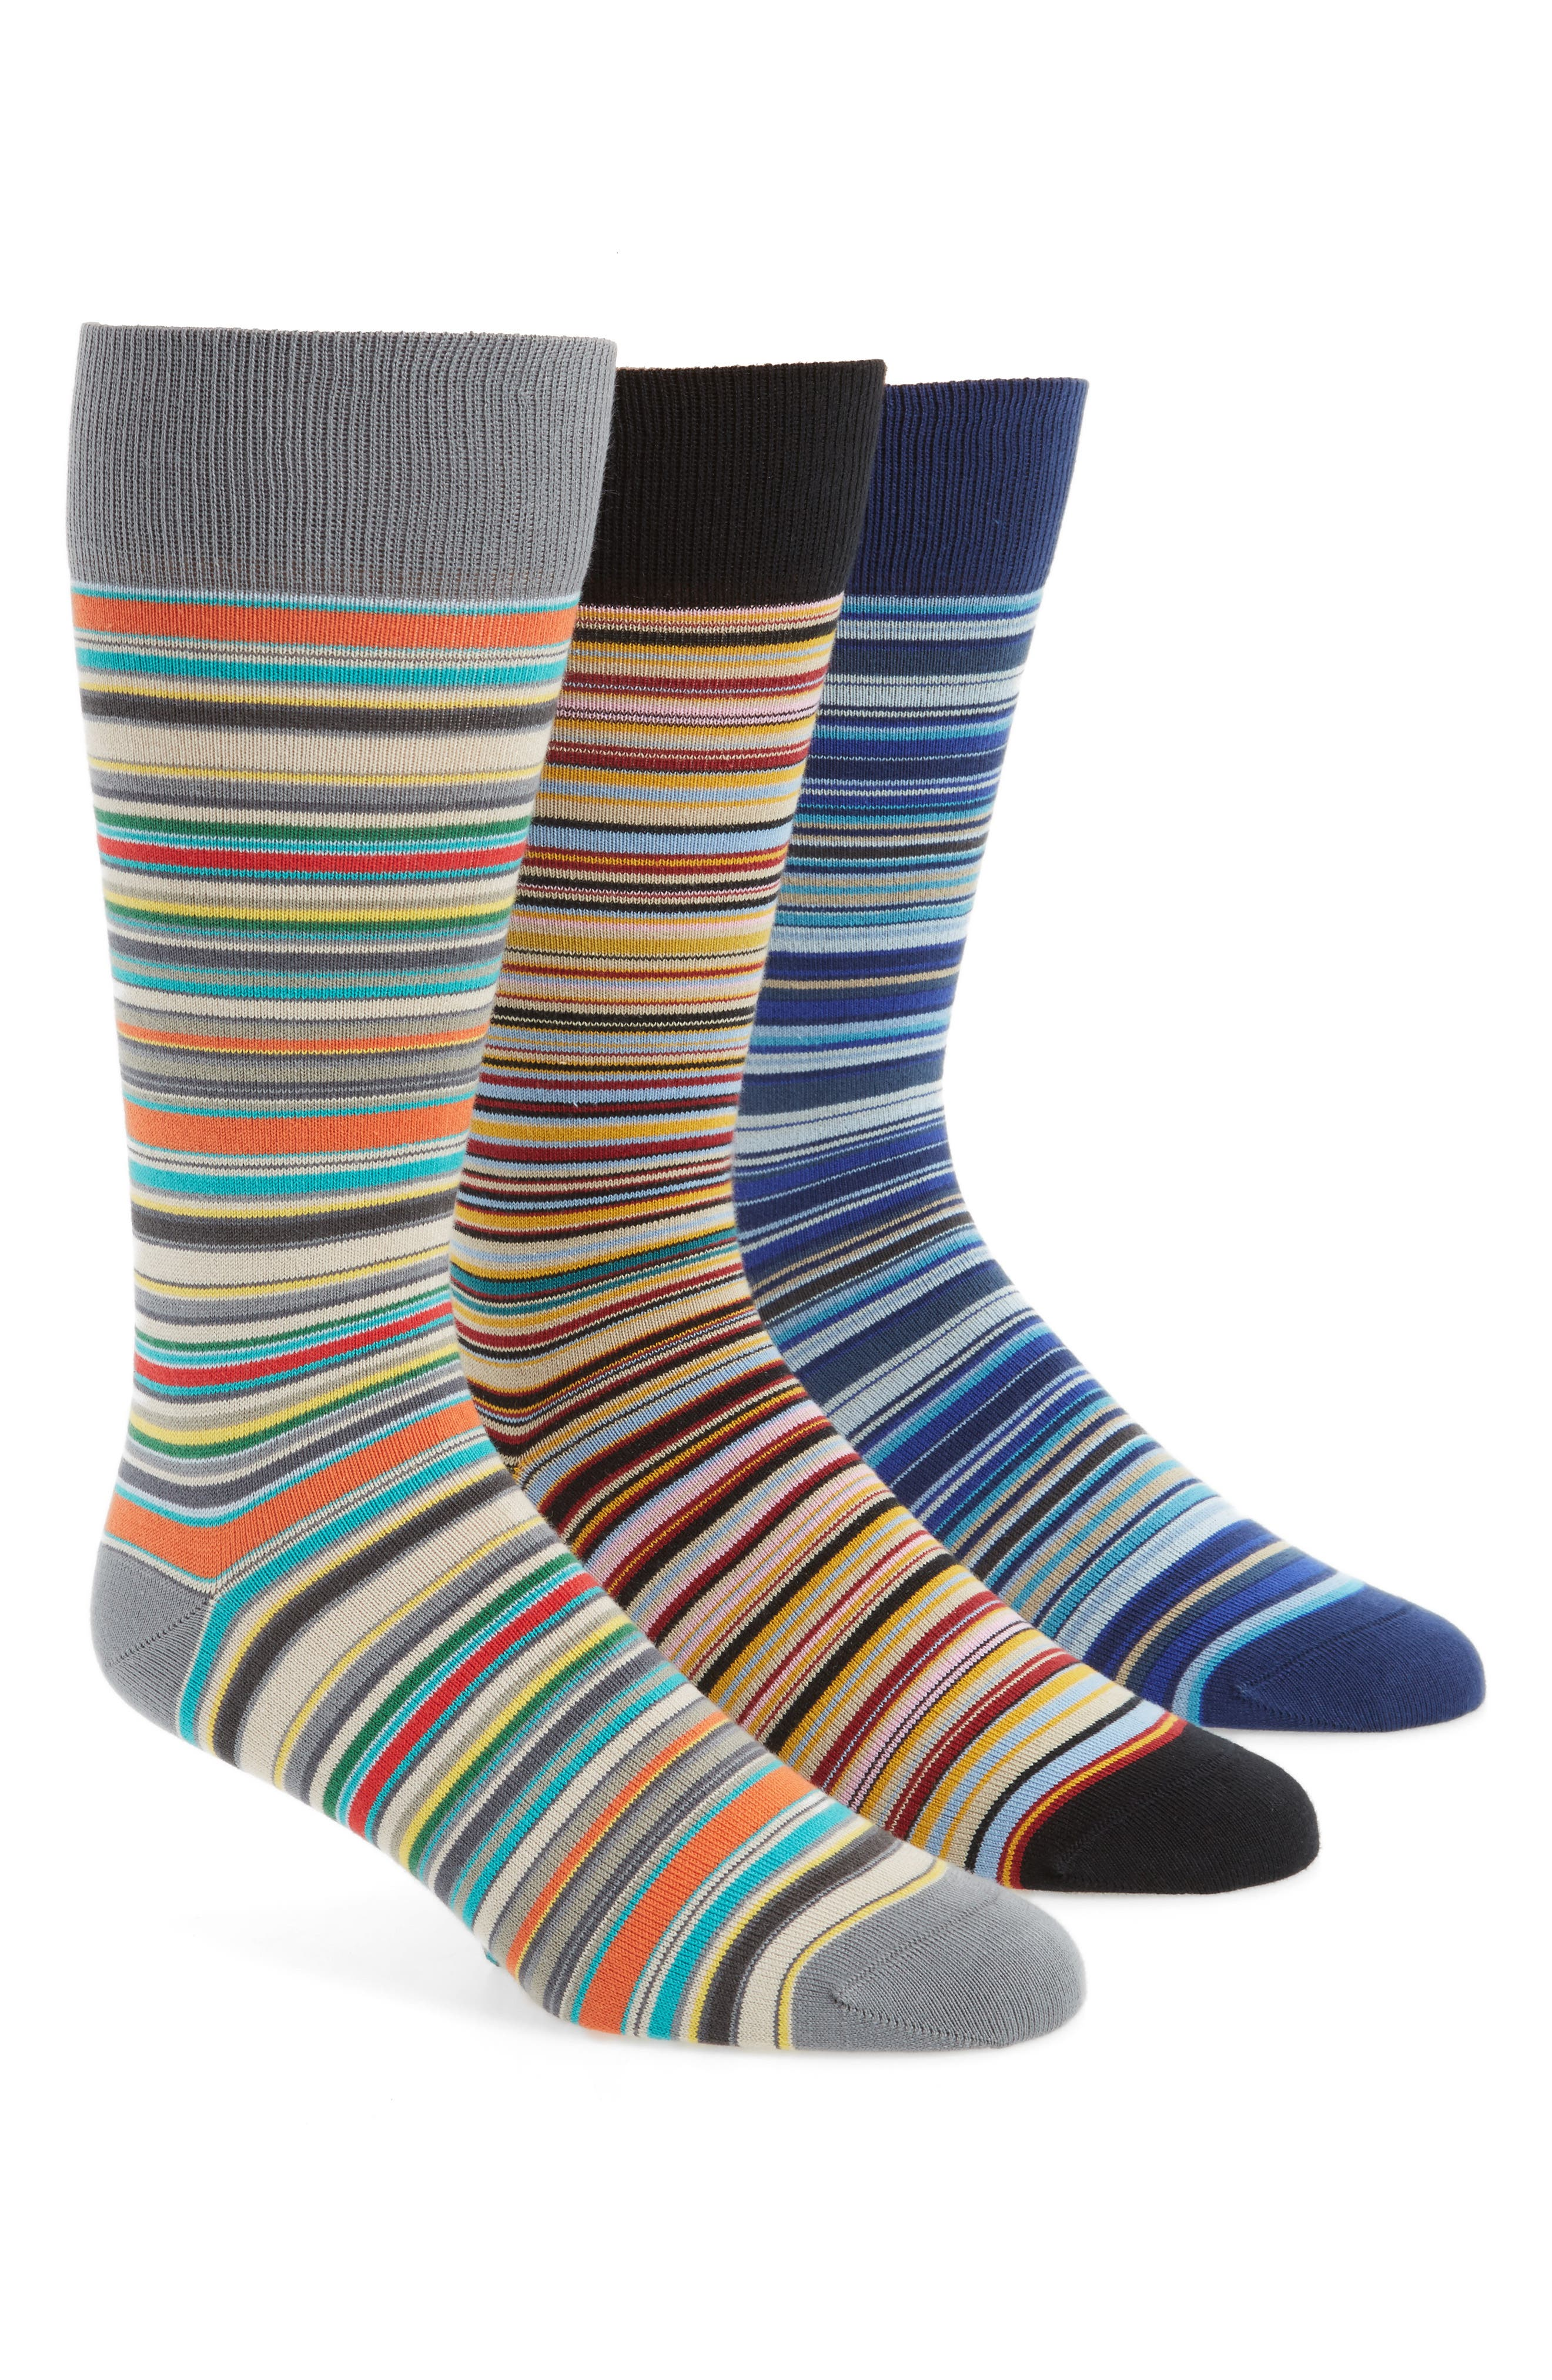 Paul Smith 3-Pack Novelty Socks